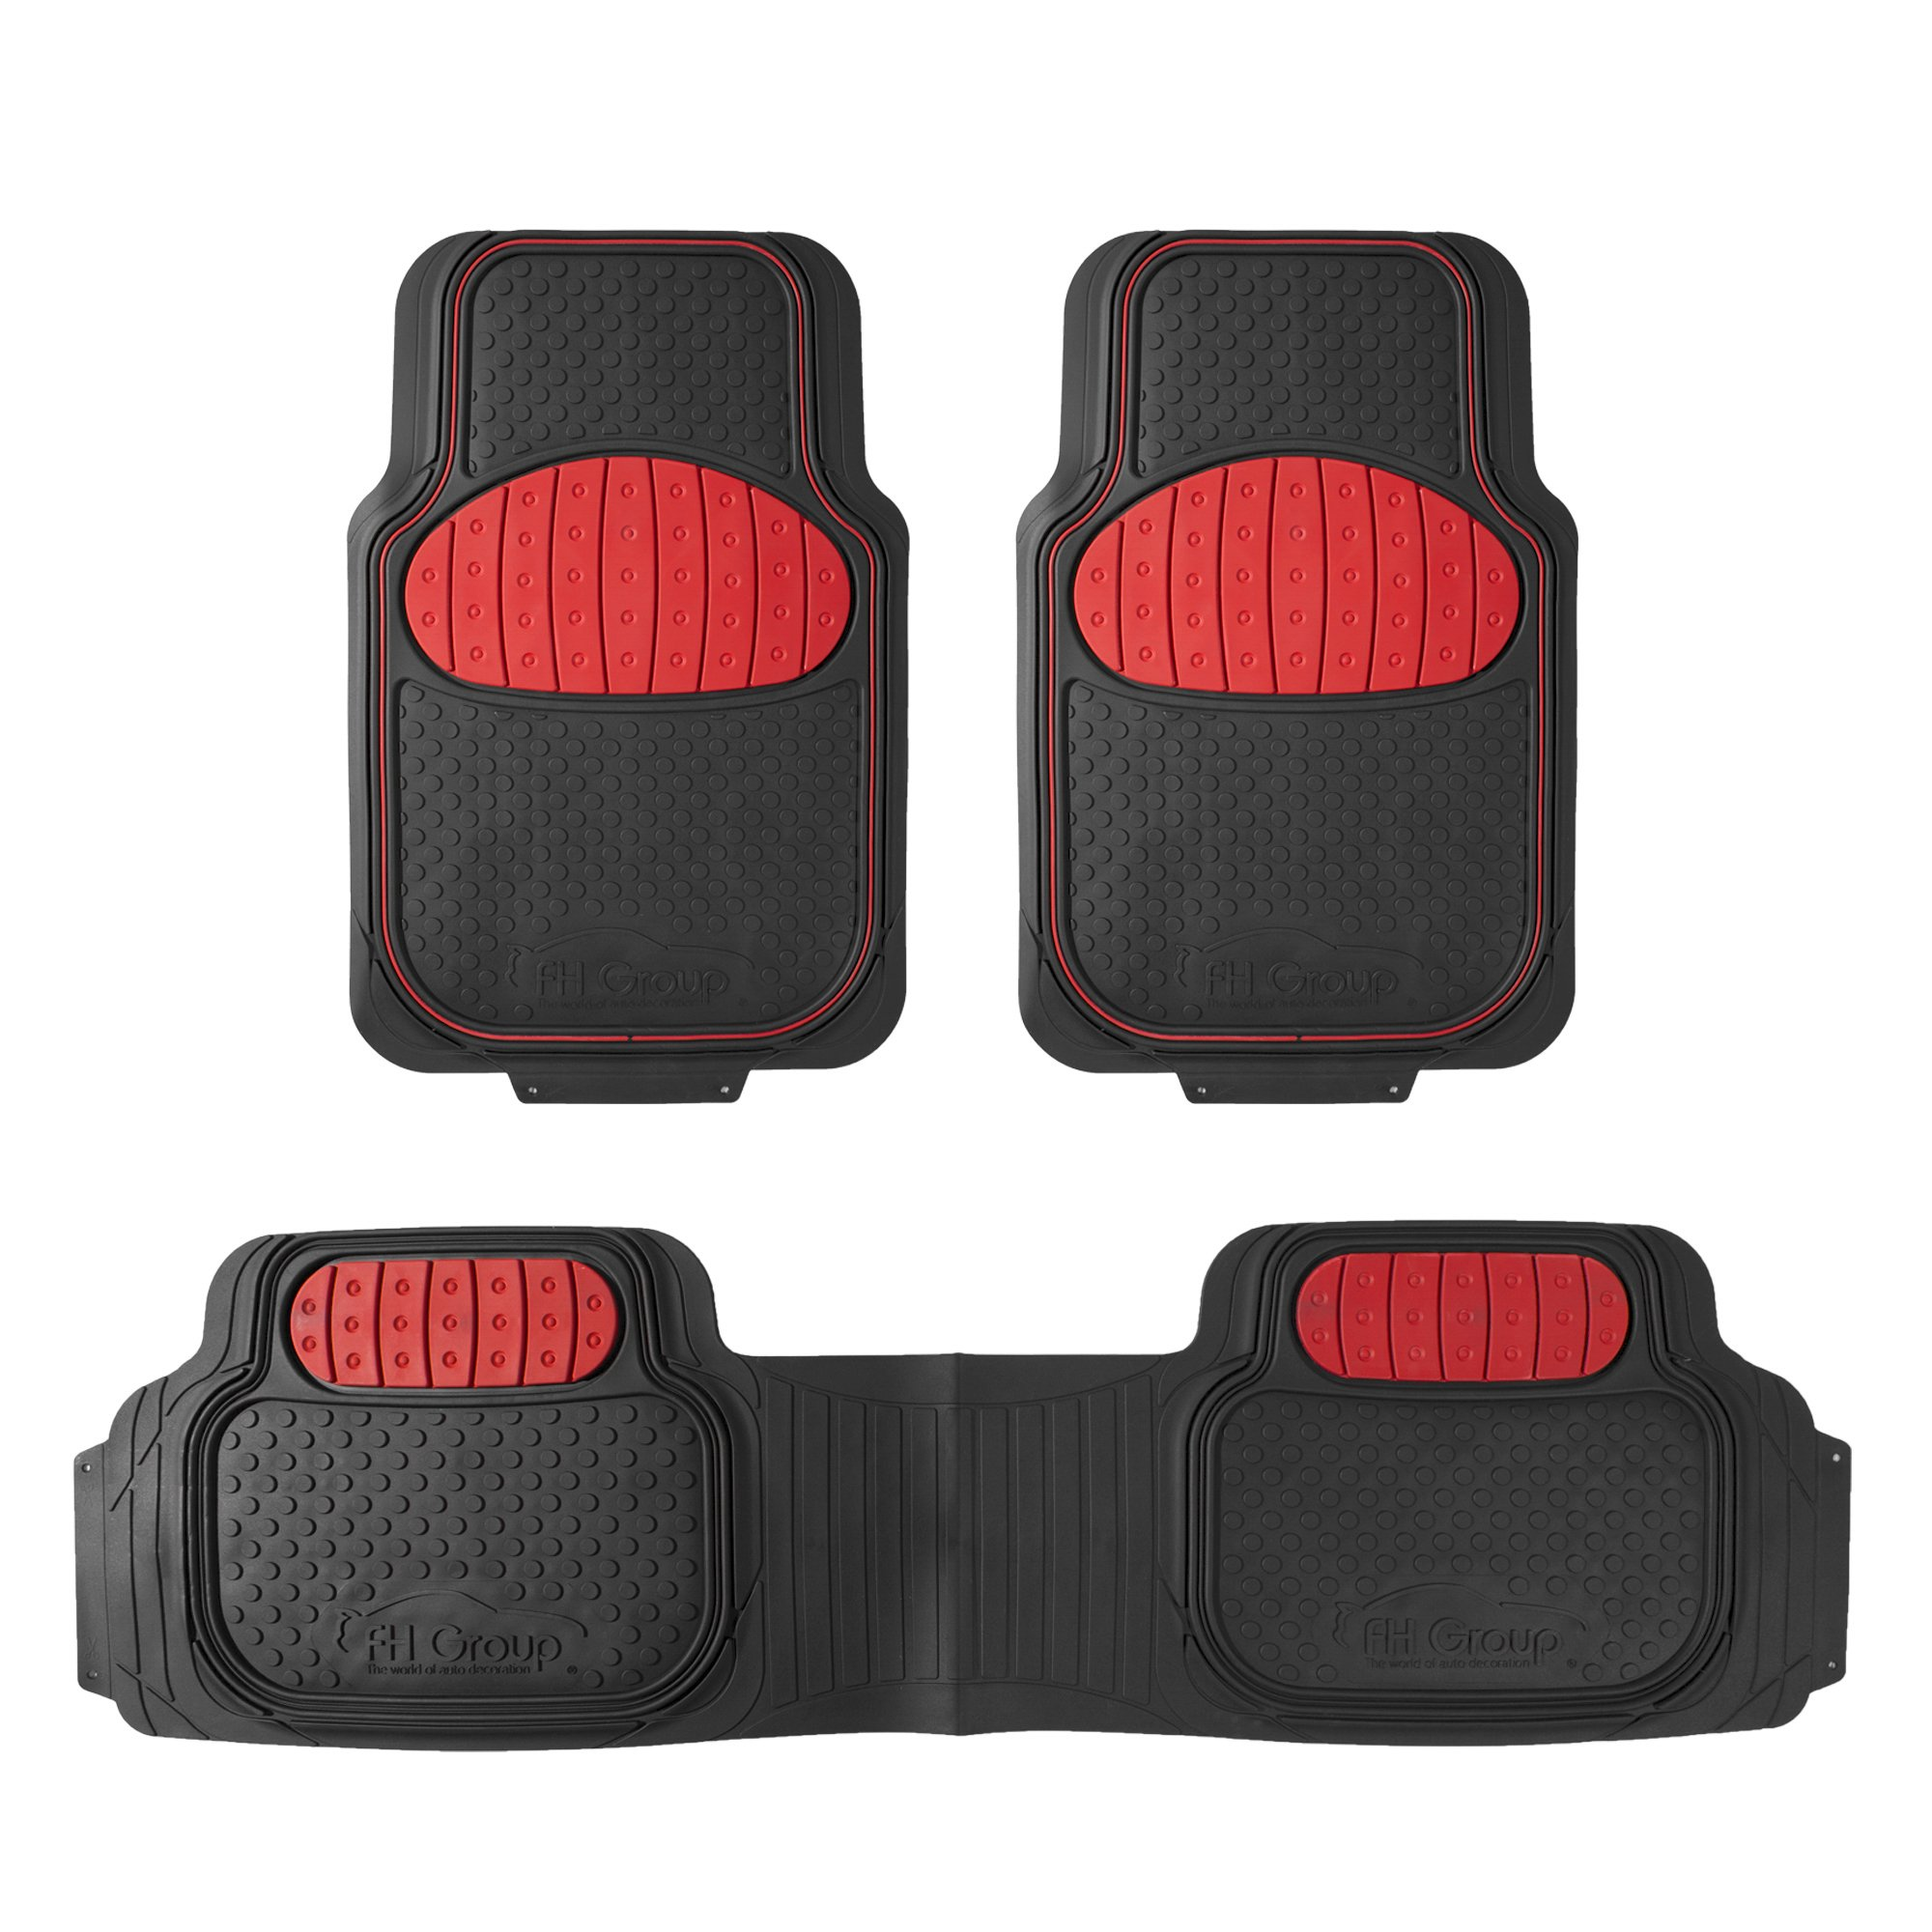 FH Group F11500RED Heavy Duty Touchdown Rubber Floor Mat (Red Full Set Trim to Fit) by FH Group